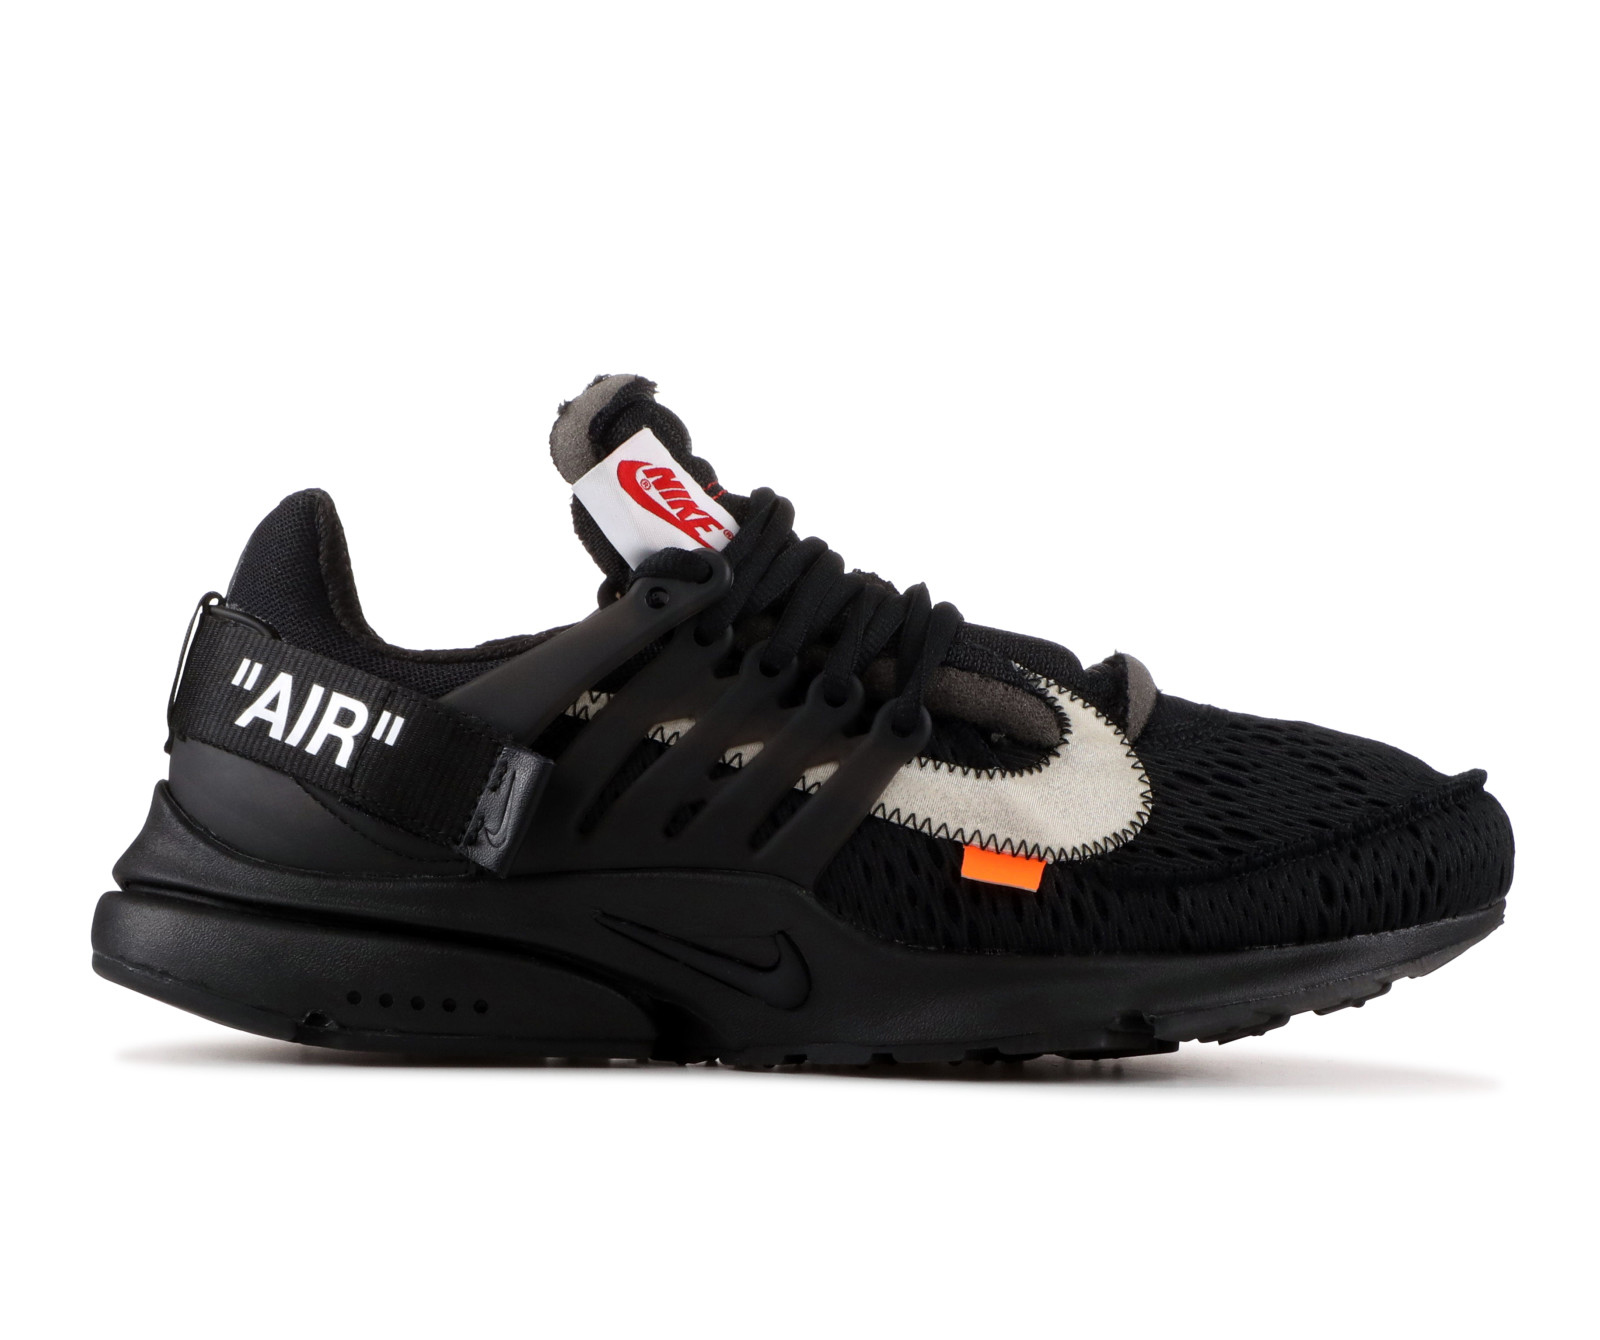 sale retailer 6c9d0 f62aa Off-White Nike Presto - Black — Buy Feezys - Replicas You Can Trust